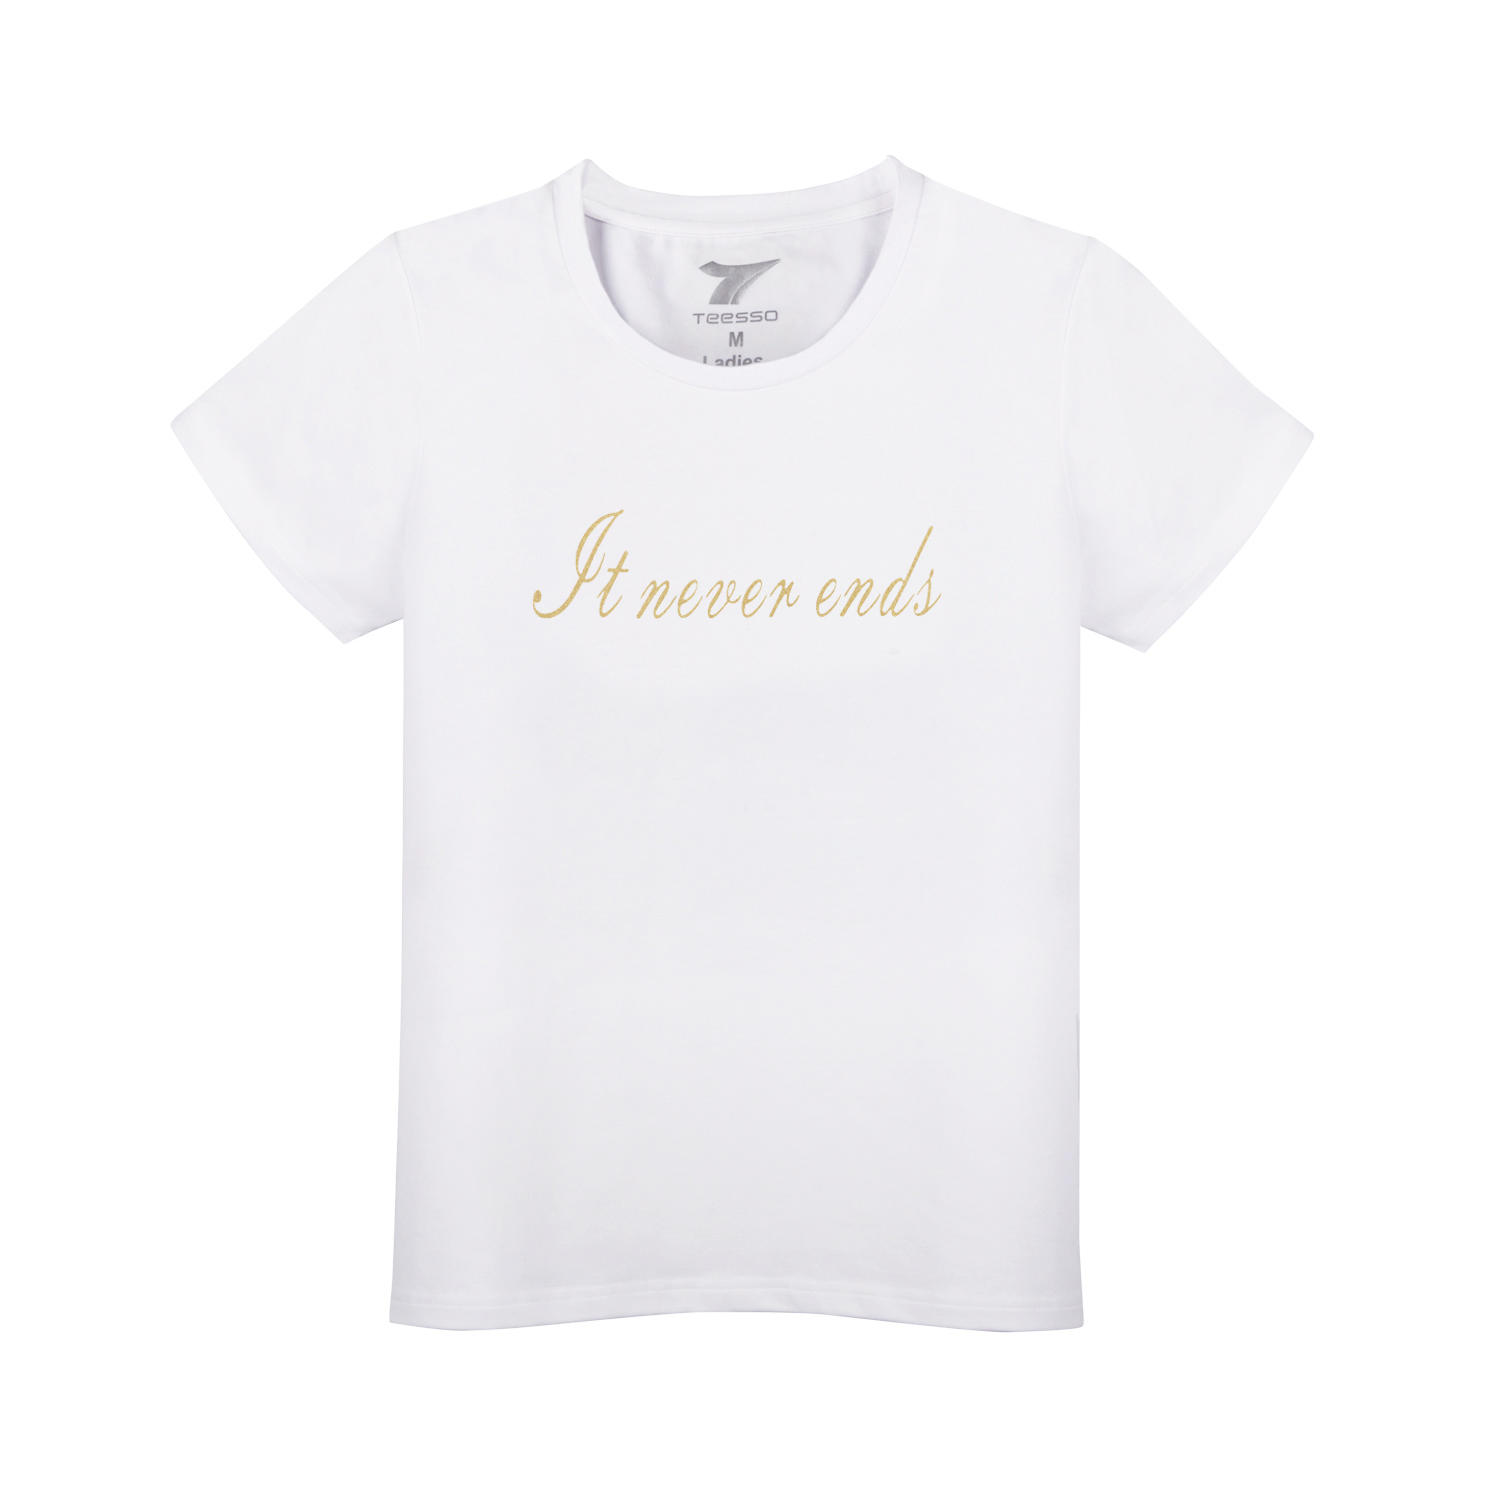 Brand Quality Tee Shirts With Logo Customize For Women High Quality Printing 5% Spandex 95% Cotton White T Shirt